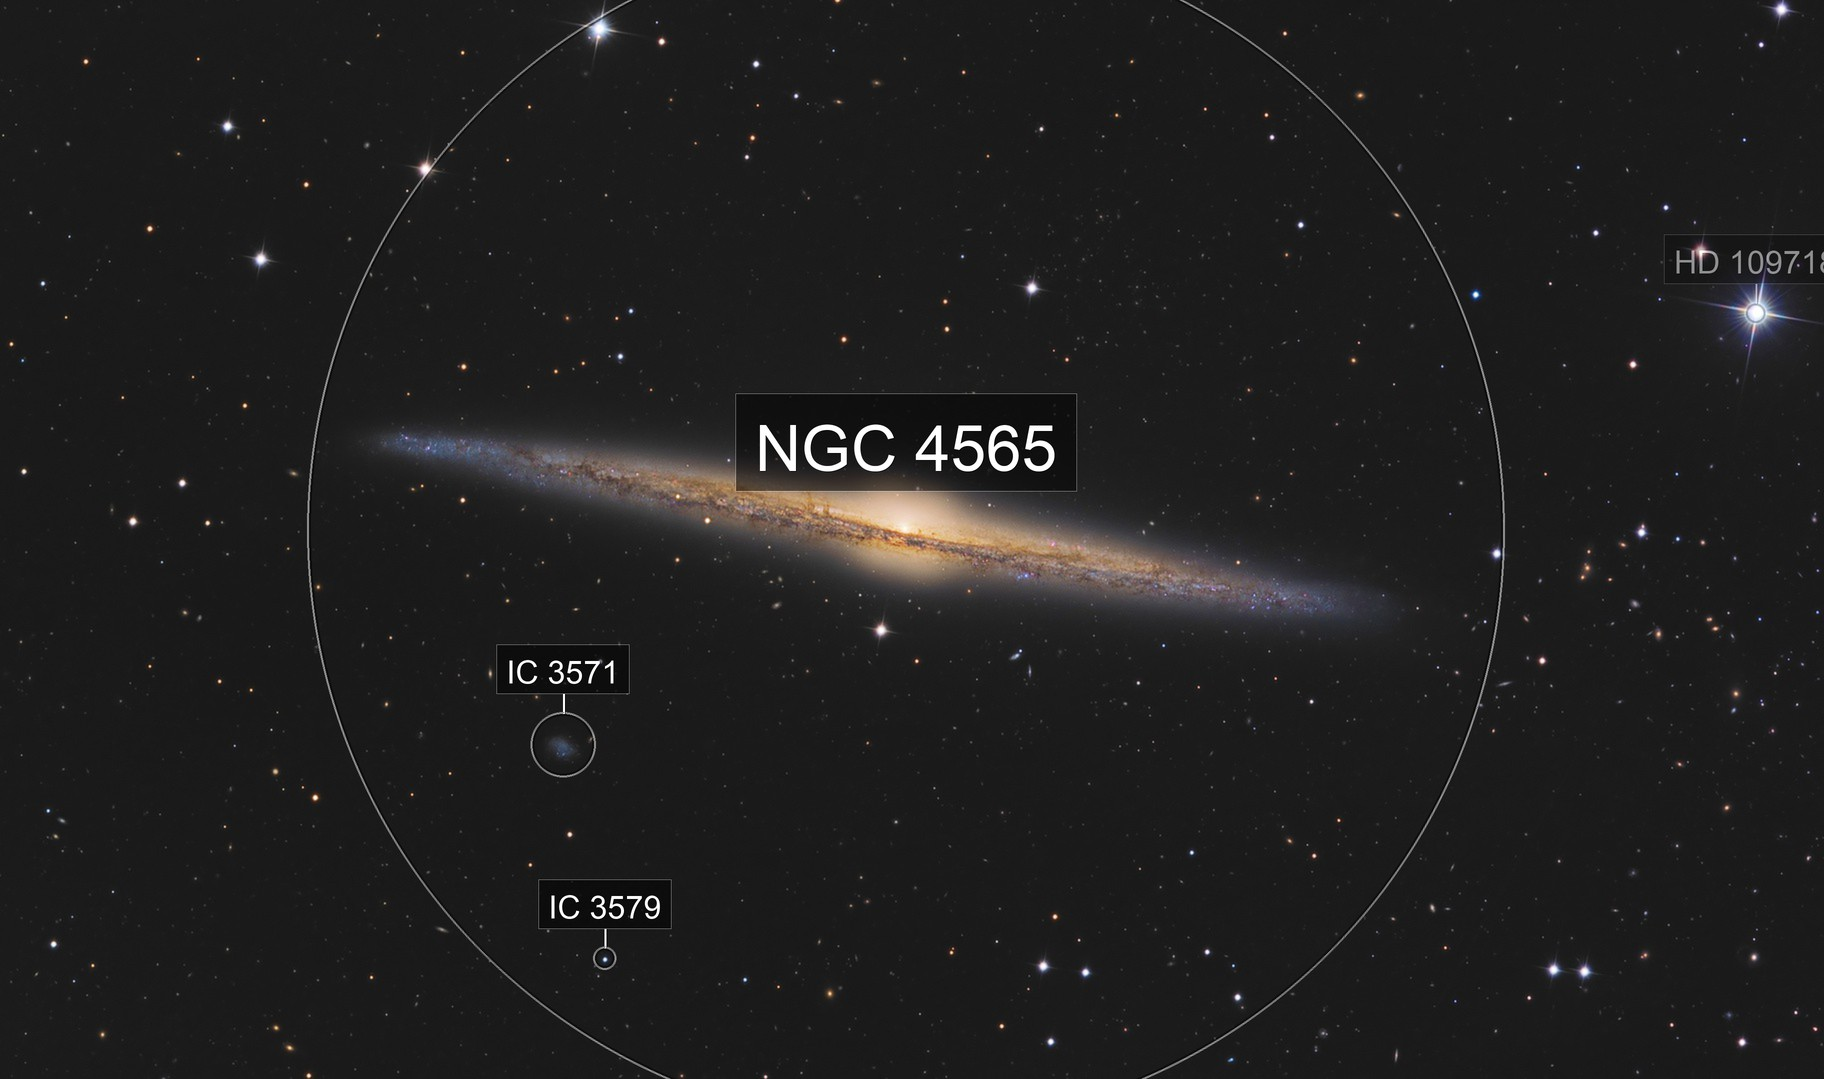 NGC 4565 - The spindle Galaxy with C2PU T1000